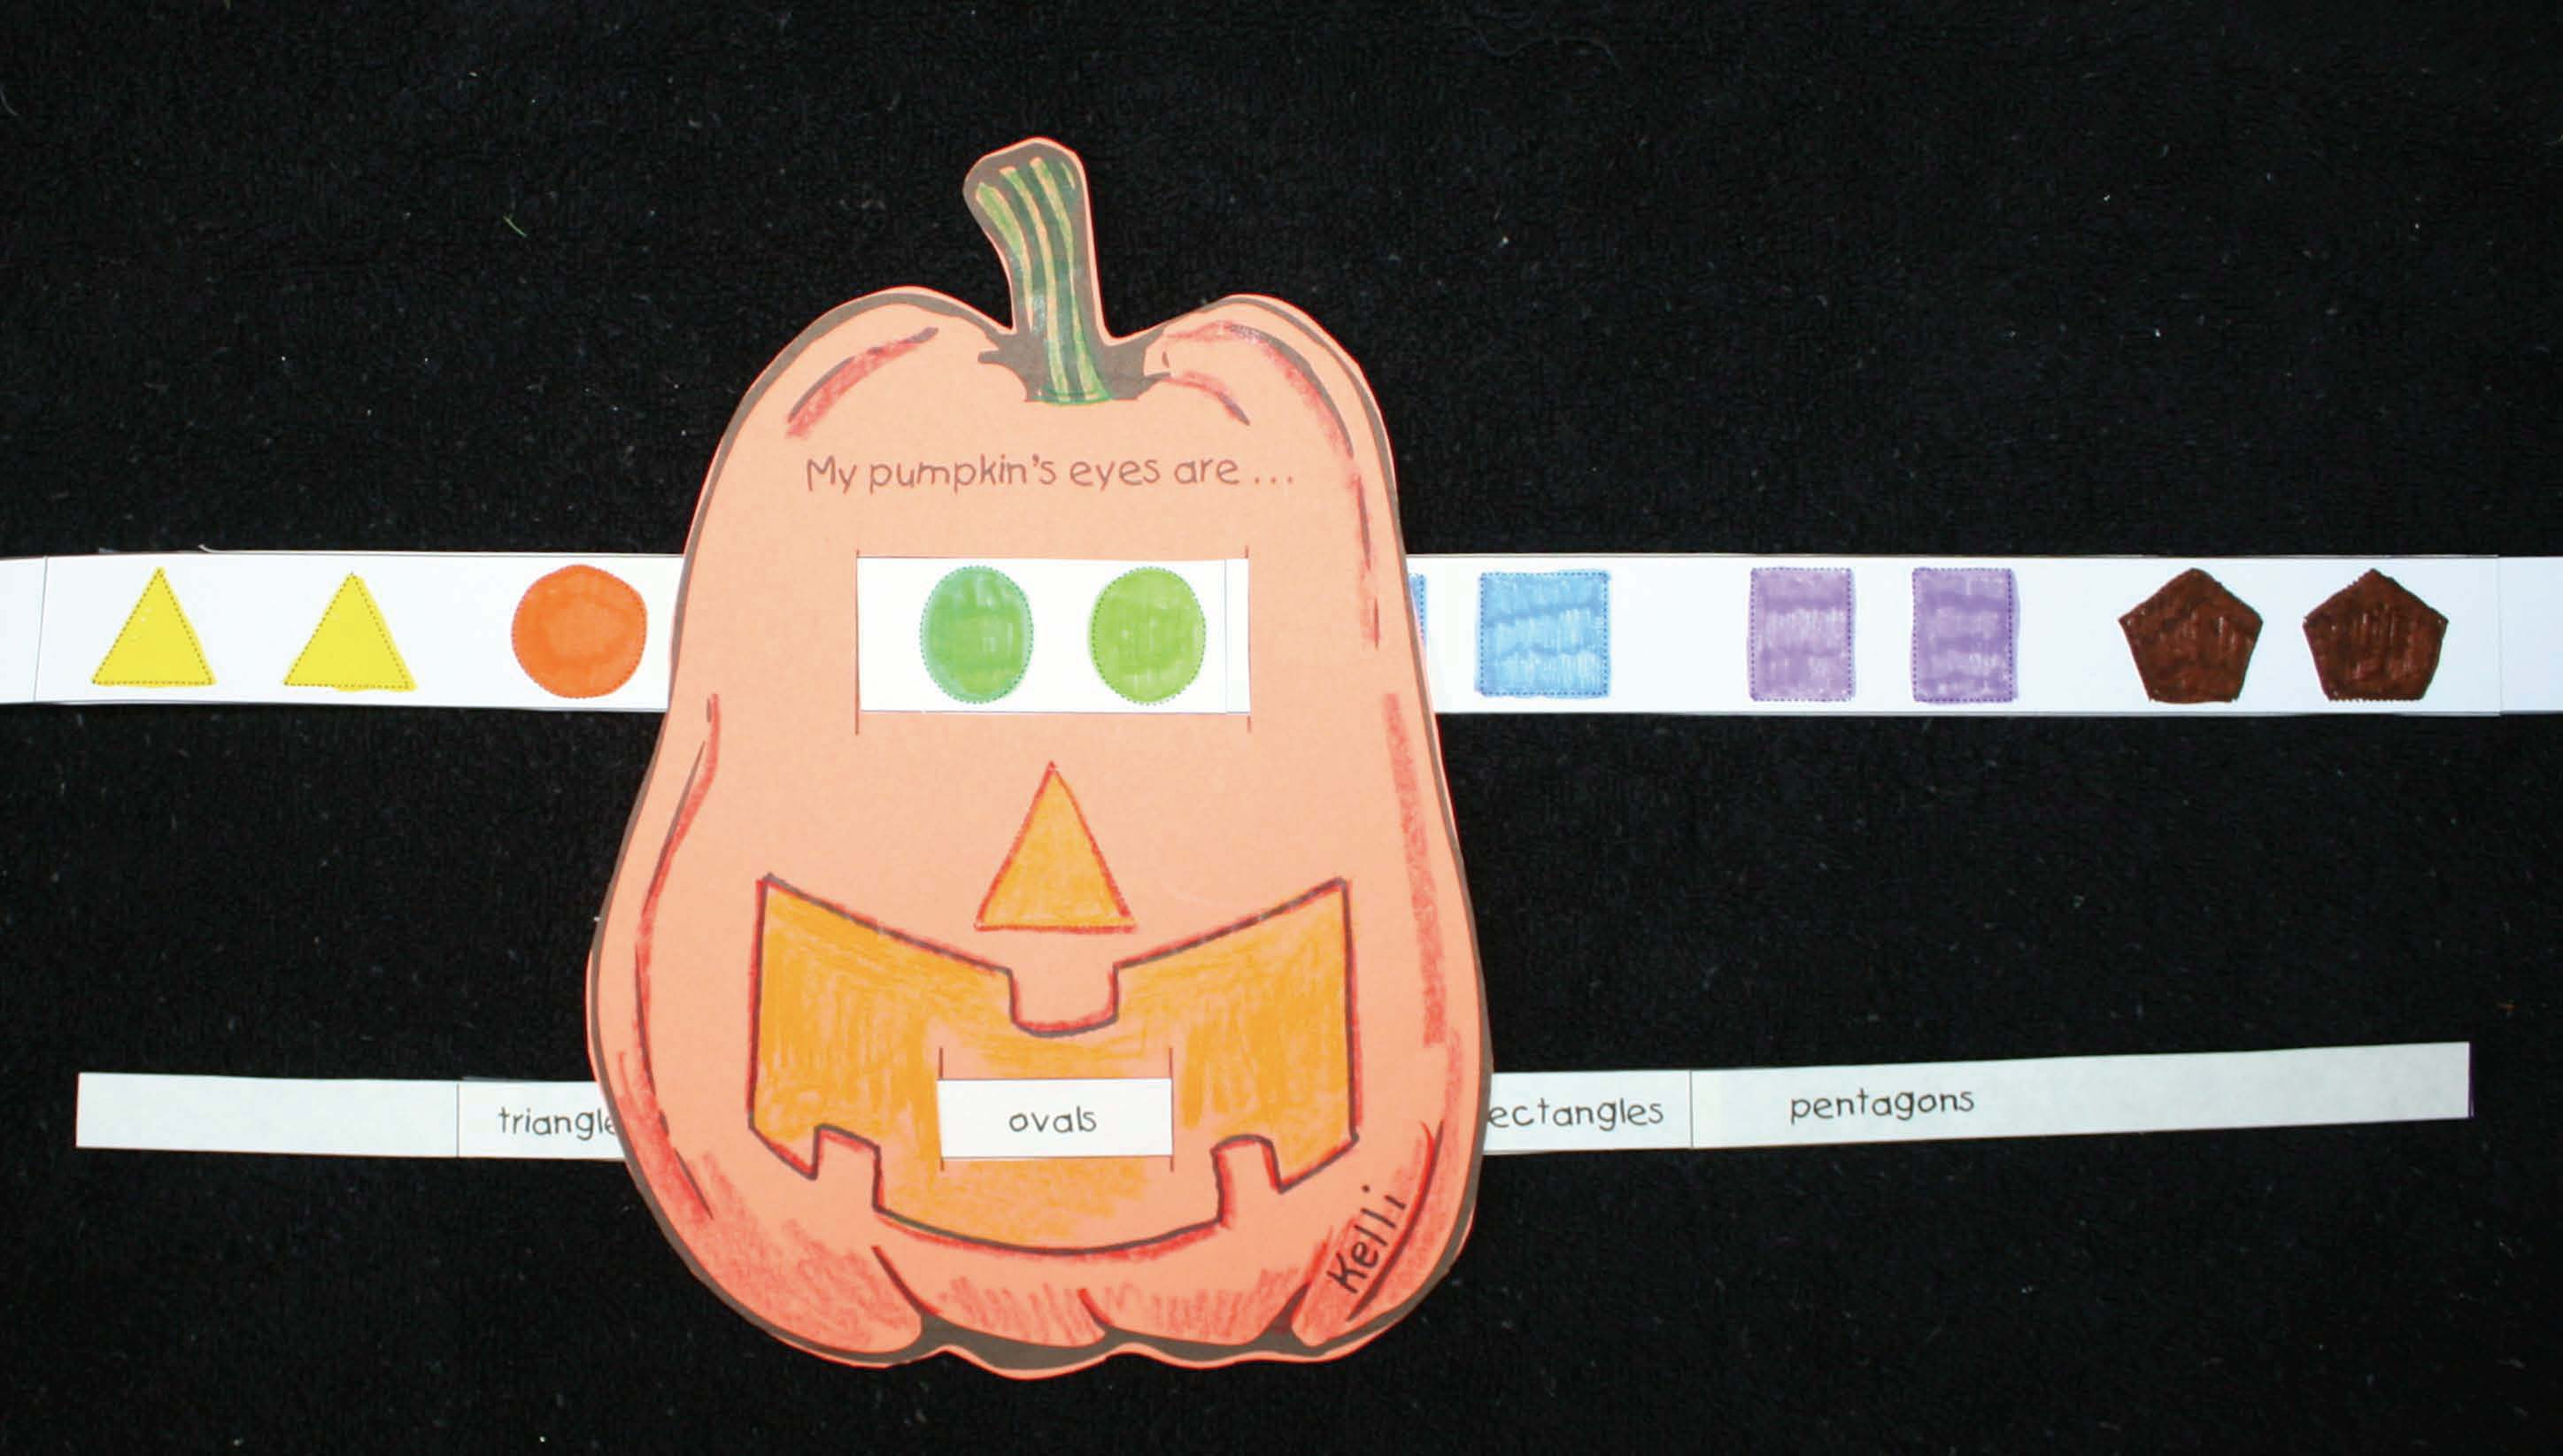 pumpkin activities, pumpkin lessons, alphabet games, alphabet activities, alphabet assessments, upper and lowercase alphabet activities, skip counting activities, skip counting by 2's 3's 5's and 10's activities, counting backwards activities, counting backwards from 20-0 activities,pumpkin arts and crafts, pumpkin crafts, shape activities, shape crafts, color activities, shape assessments, common core pumpkins, common core shapes, free common core for kindergarten and 1st grade, assessment for shapes, free assessment for shapes,